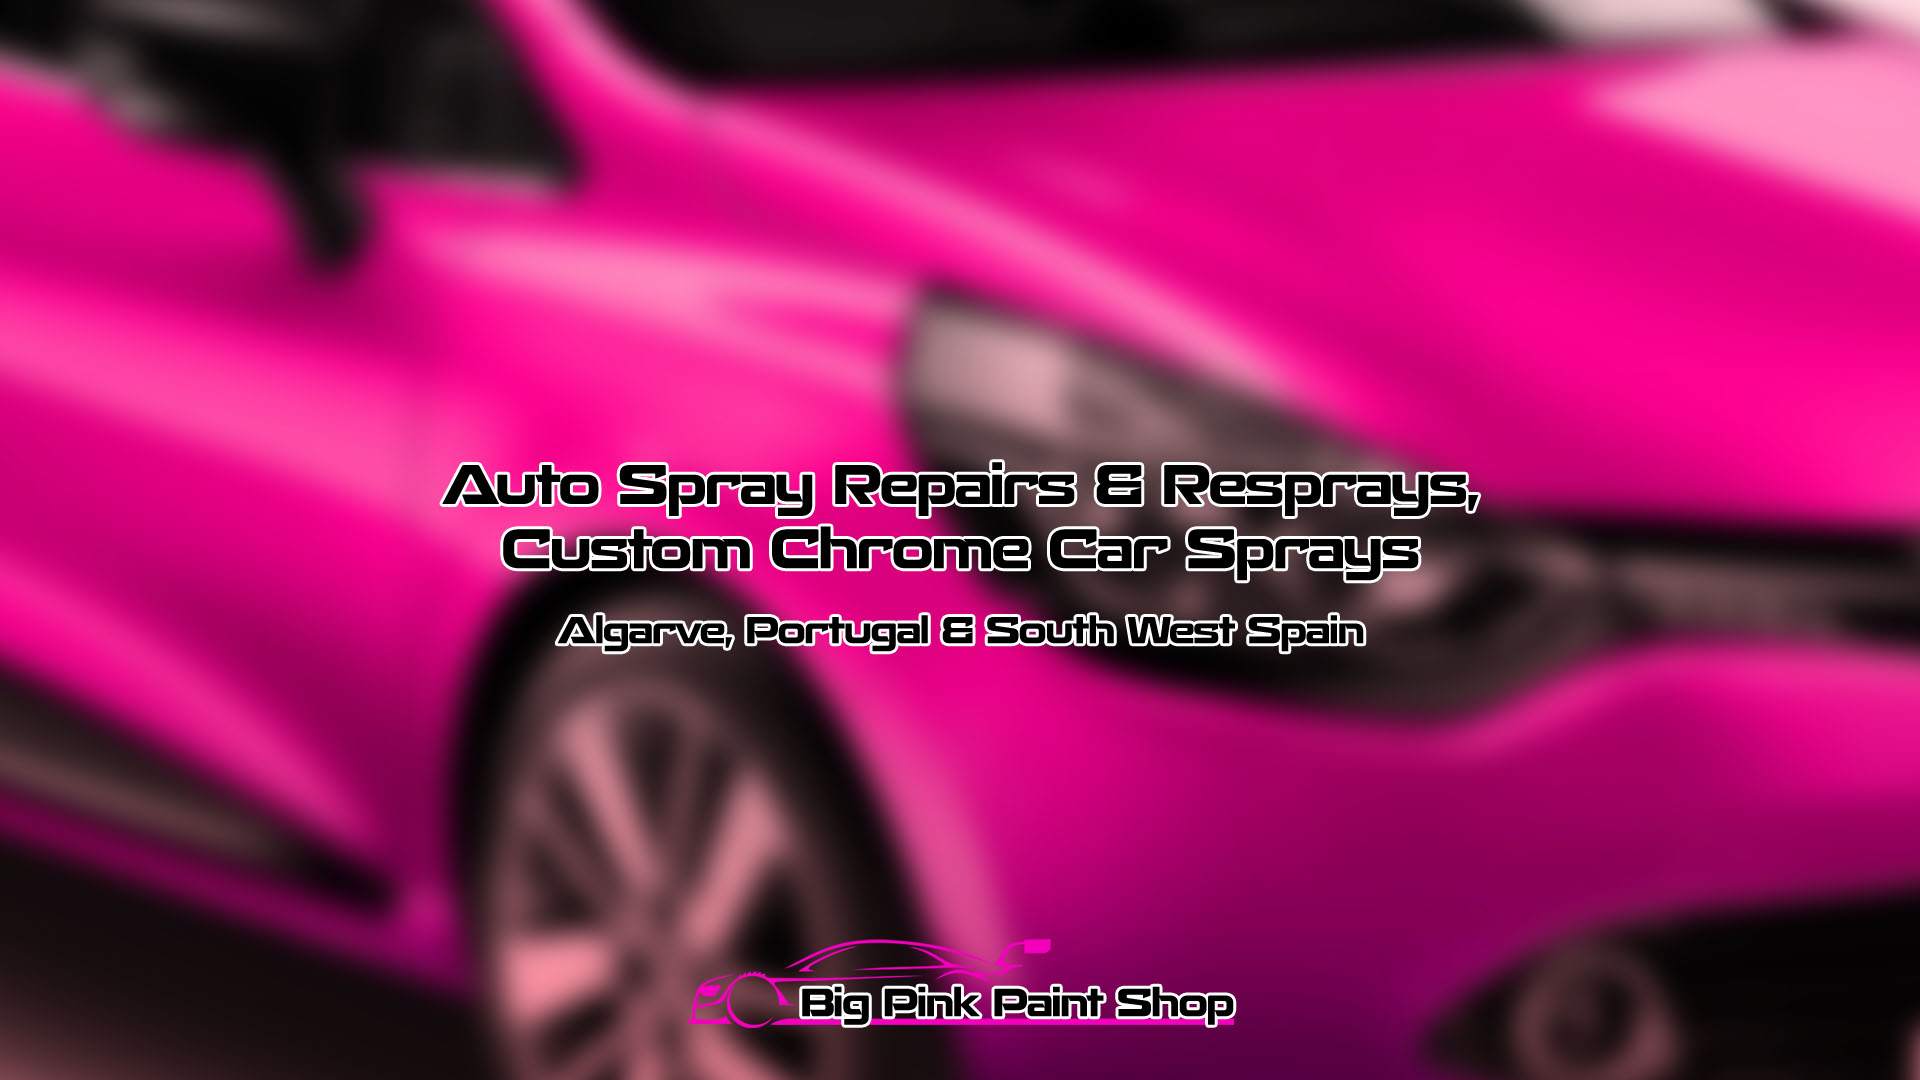 The Big Pink Paint Shop, Tavira  Car Resprays & Light Auto